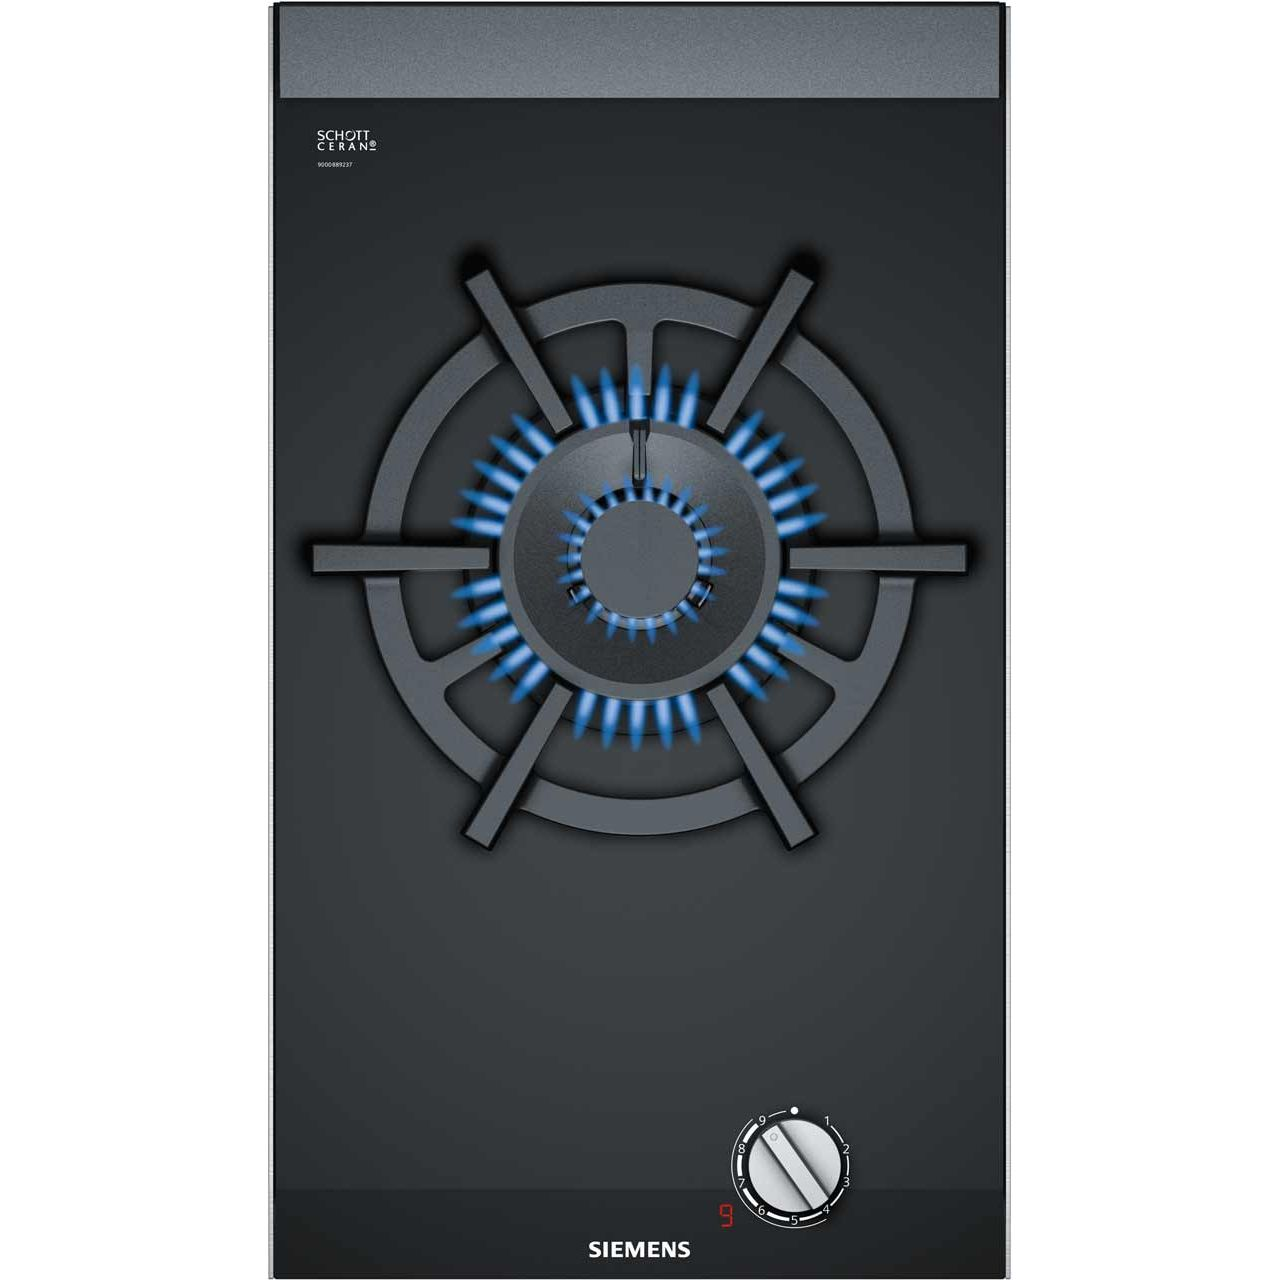 Details About Siemens ER3A6AD70 IQ 700 Built In 30cm 1 Burners Gas Hob Black